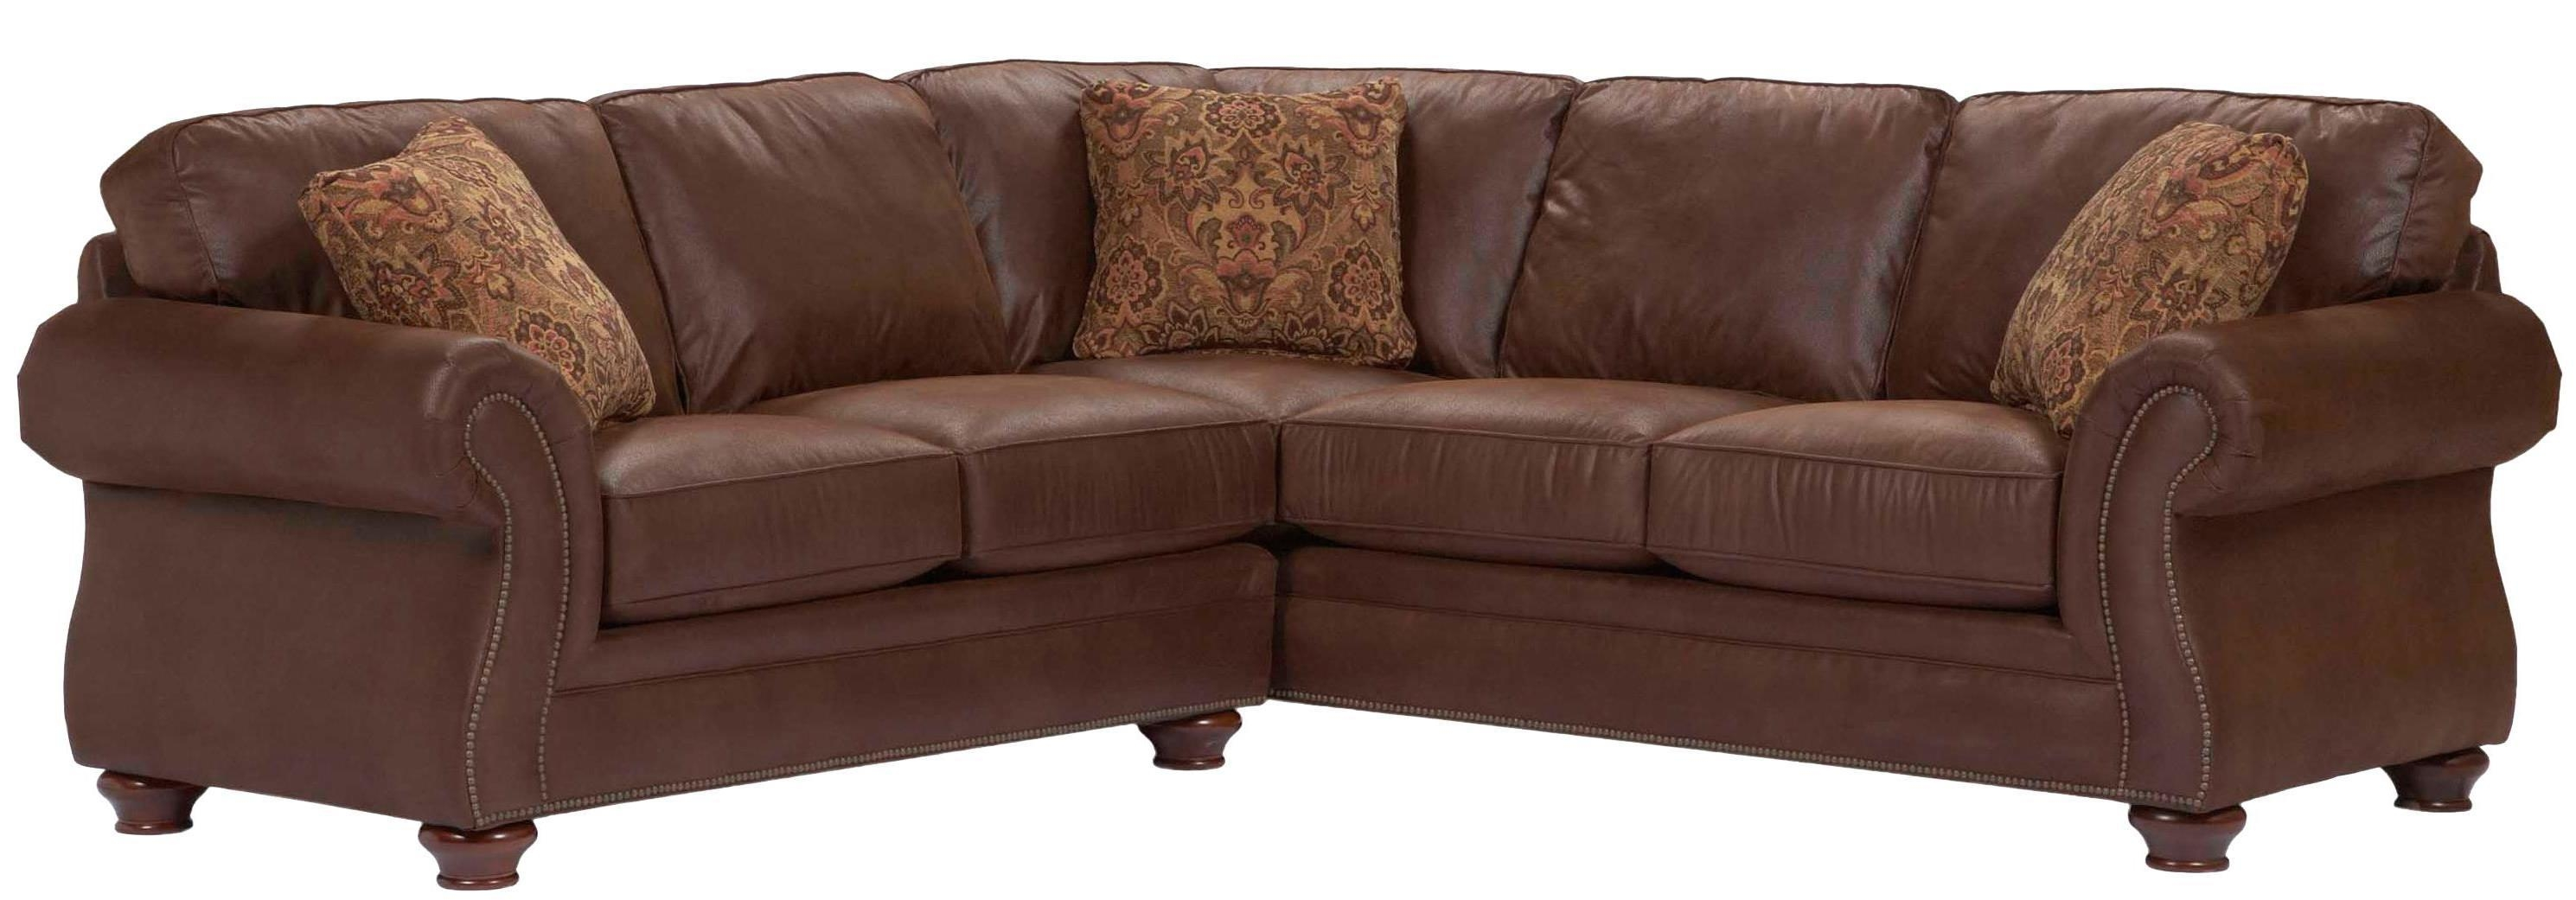 Broyhill Furniture Laramie 2 Piece Corner Sectional Sofa – Lindy's Throughout Broyhill Sectional Sofa (Image 3 of 15)